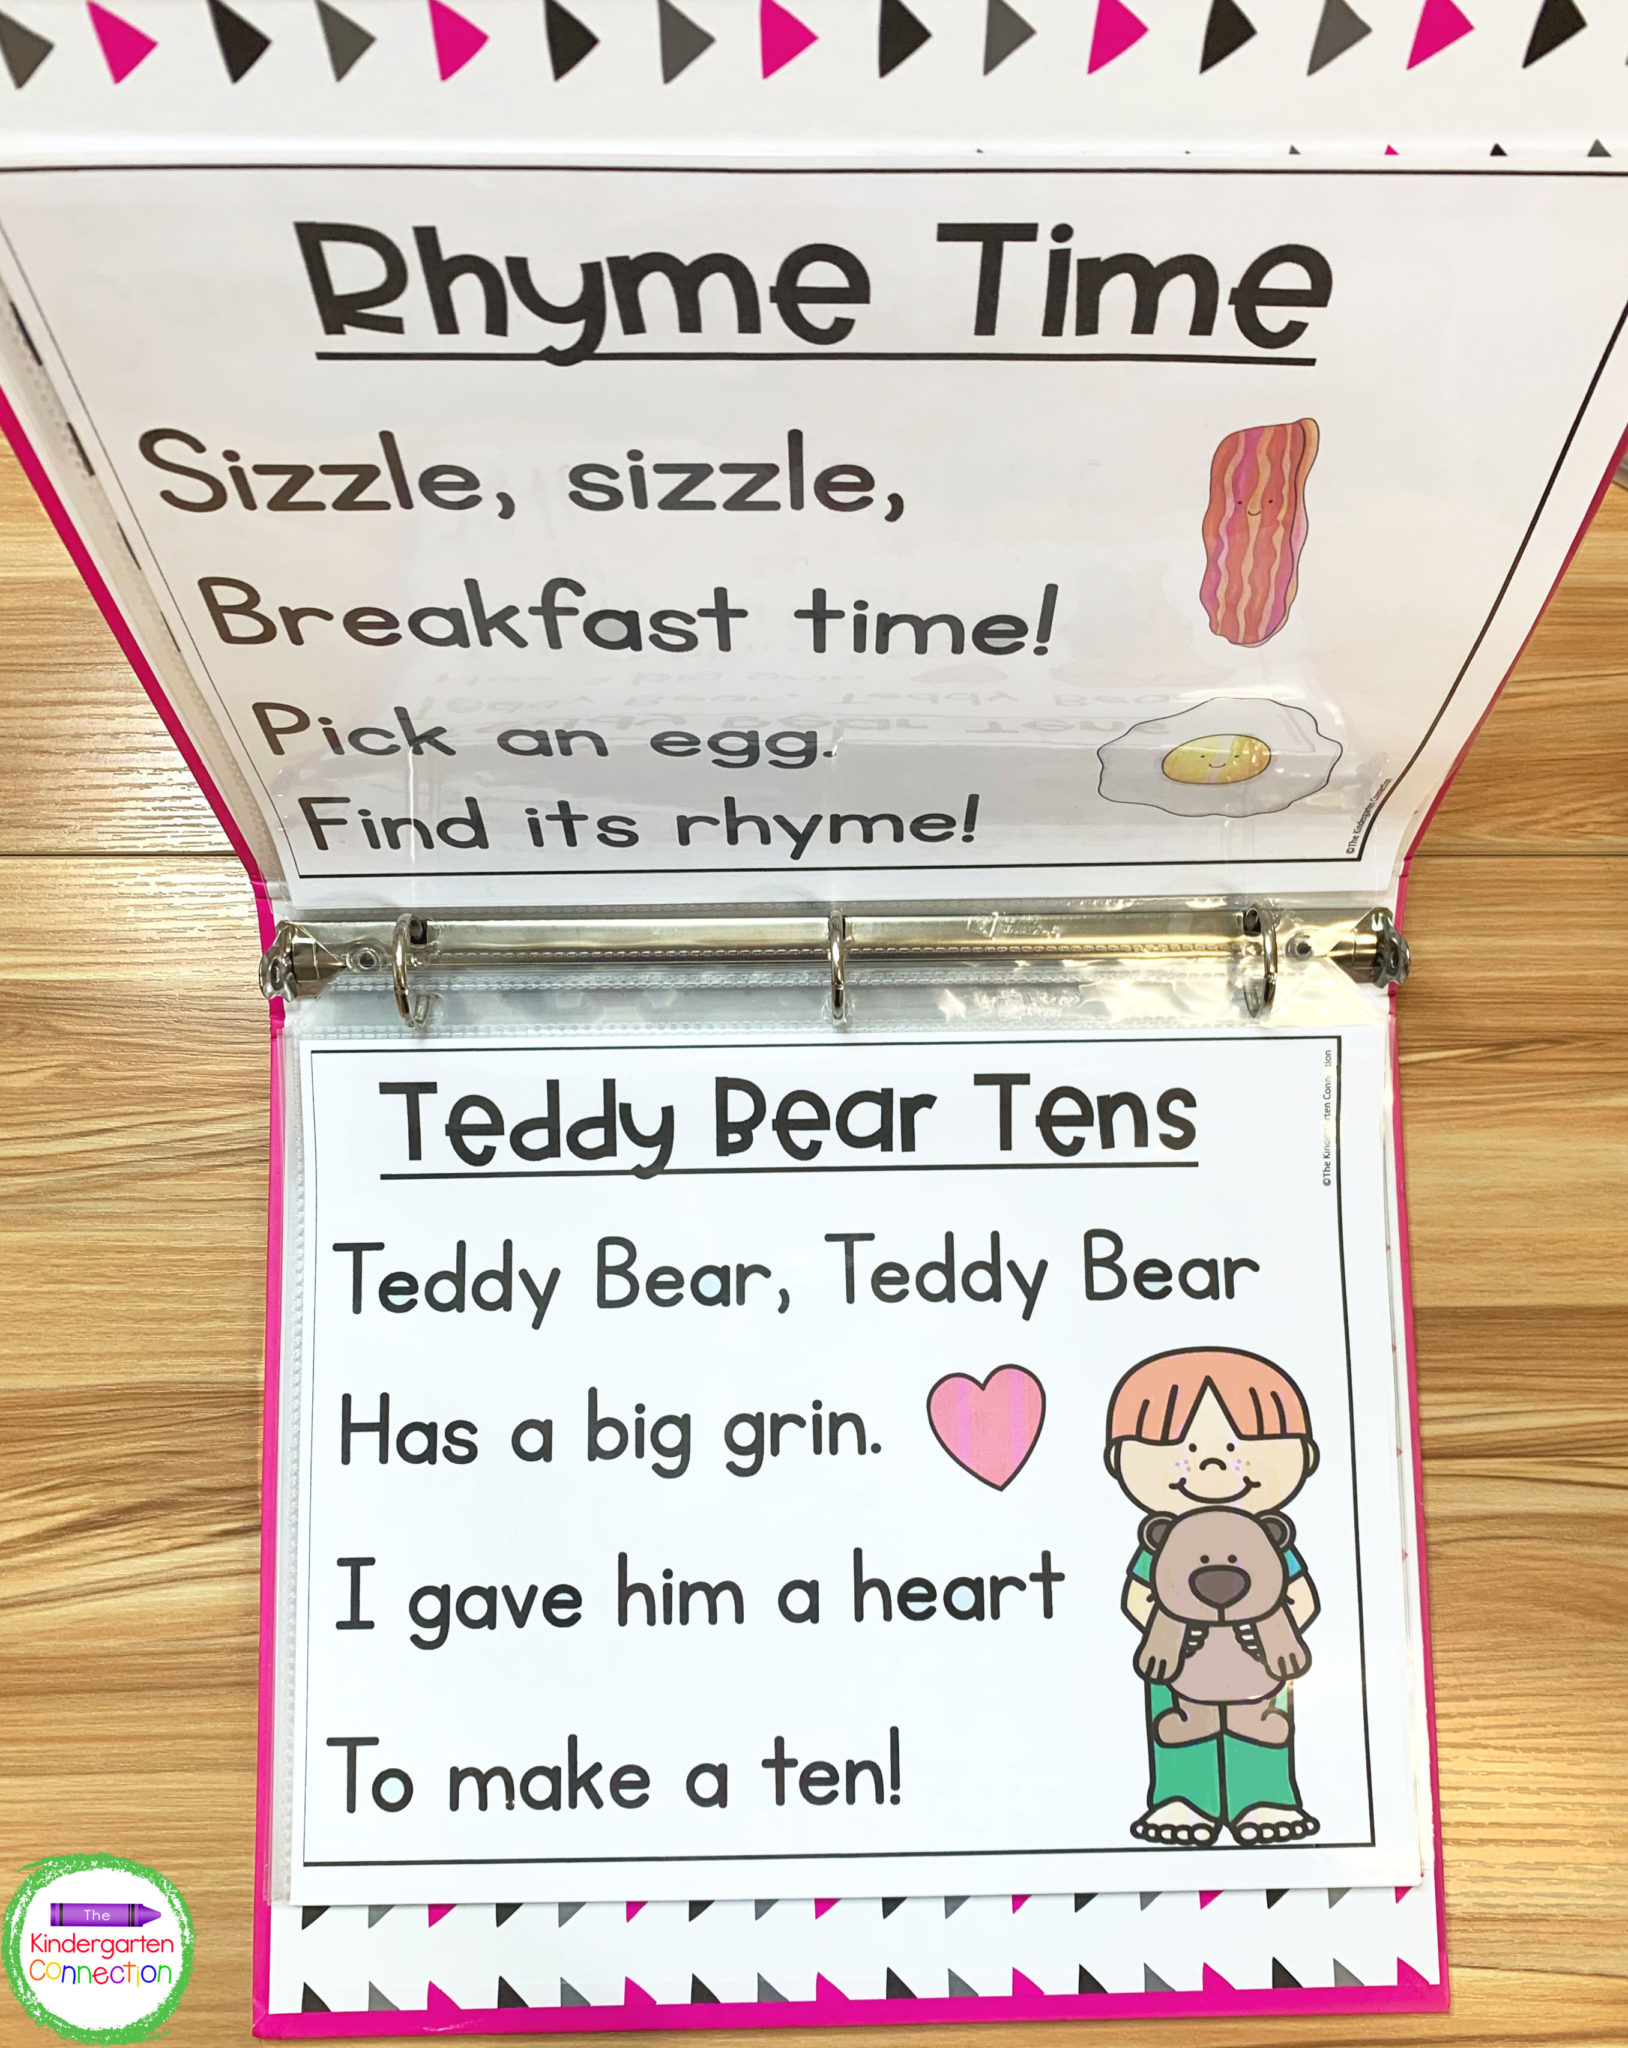 Keep the chants in a handy binder to take to small groups or have readily available for circle time.